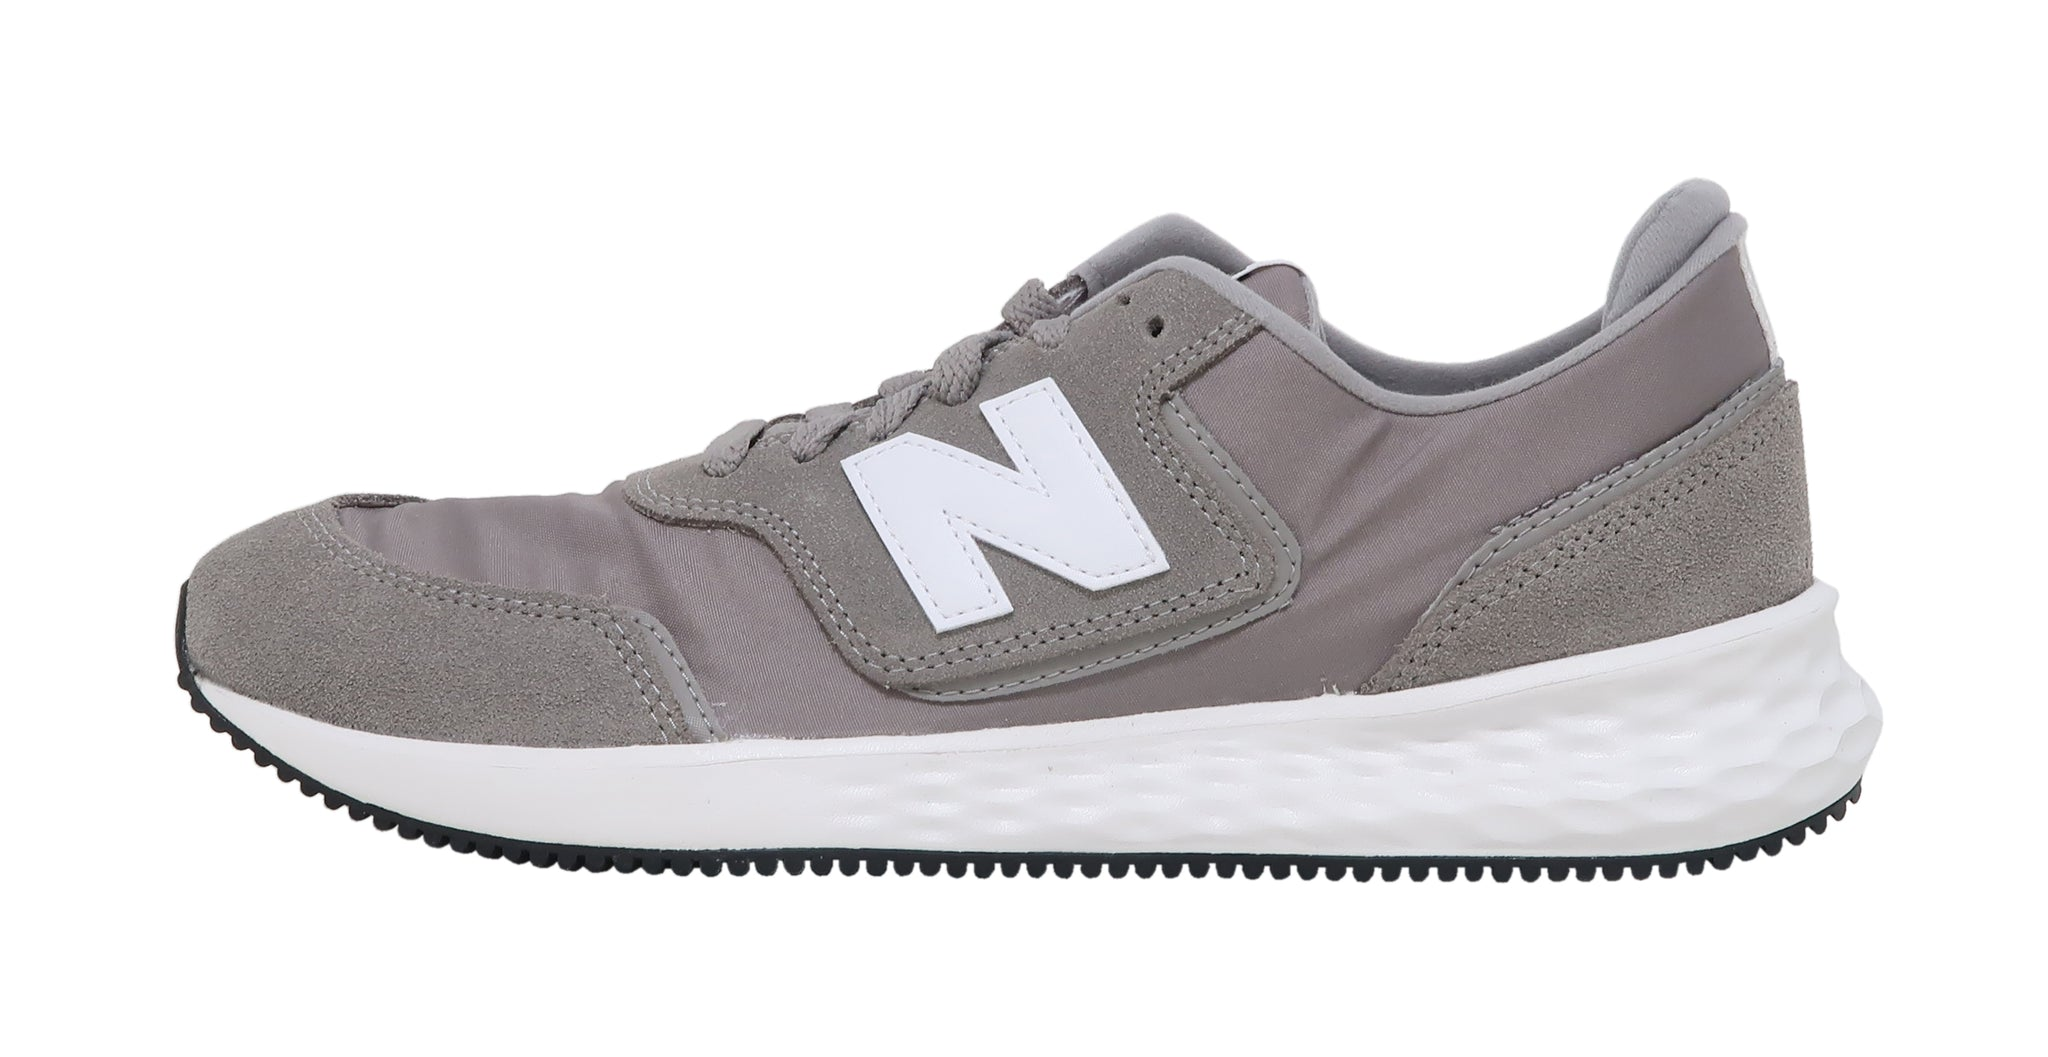 New Balance X-70 Grey/White Lifestyle Men Shoes